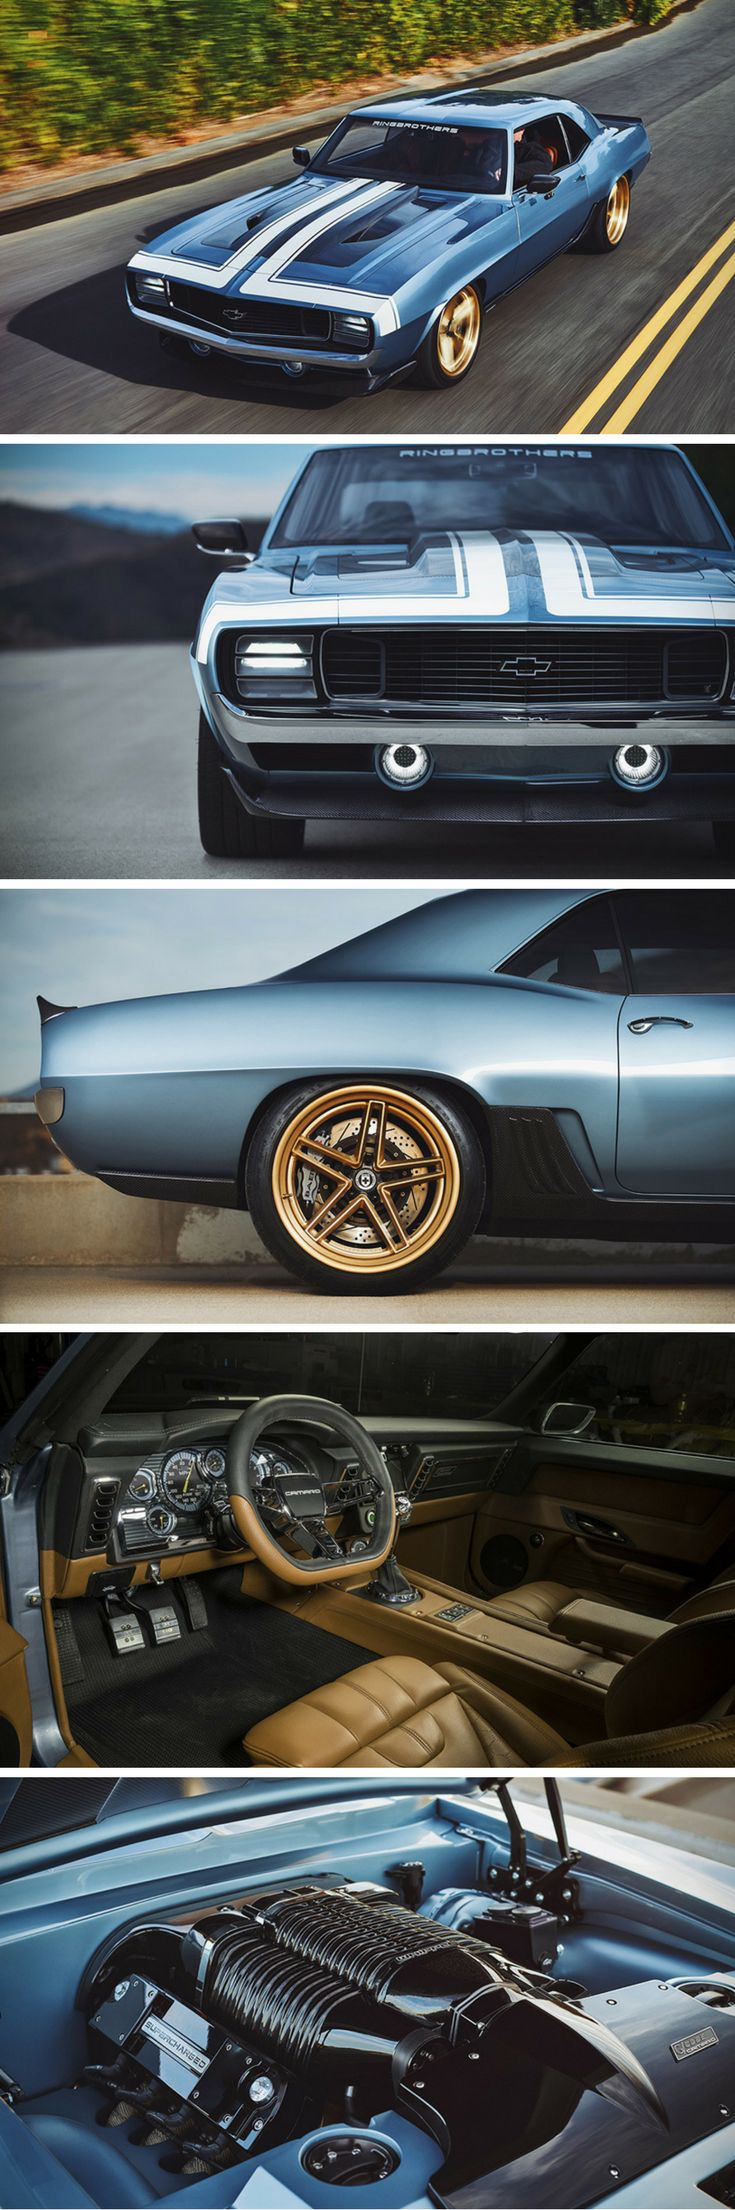 1969 chevrolet camaro G-code custom muscle car by ringbrothers